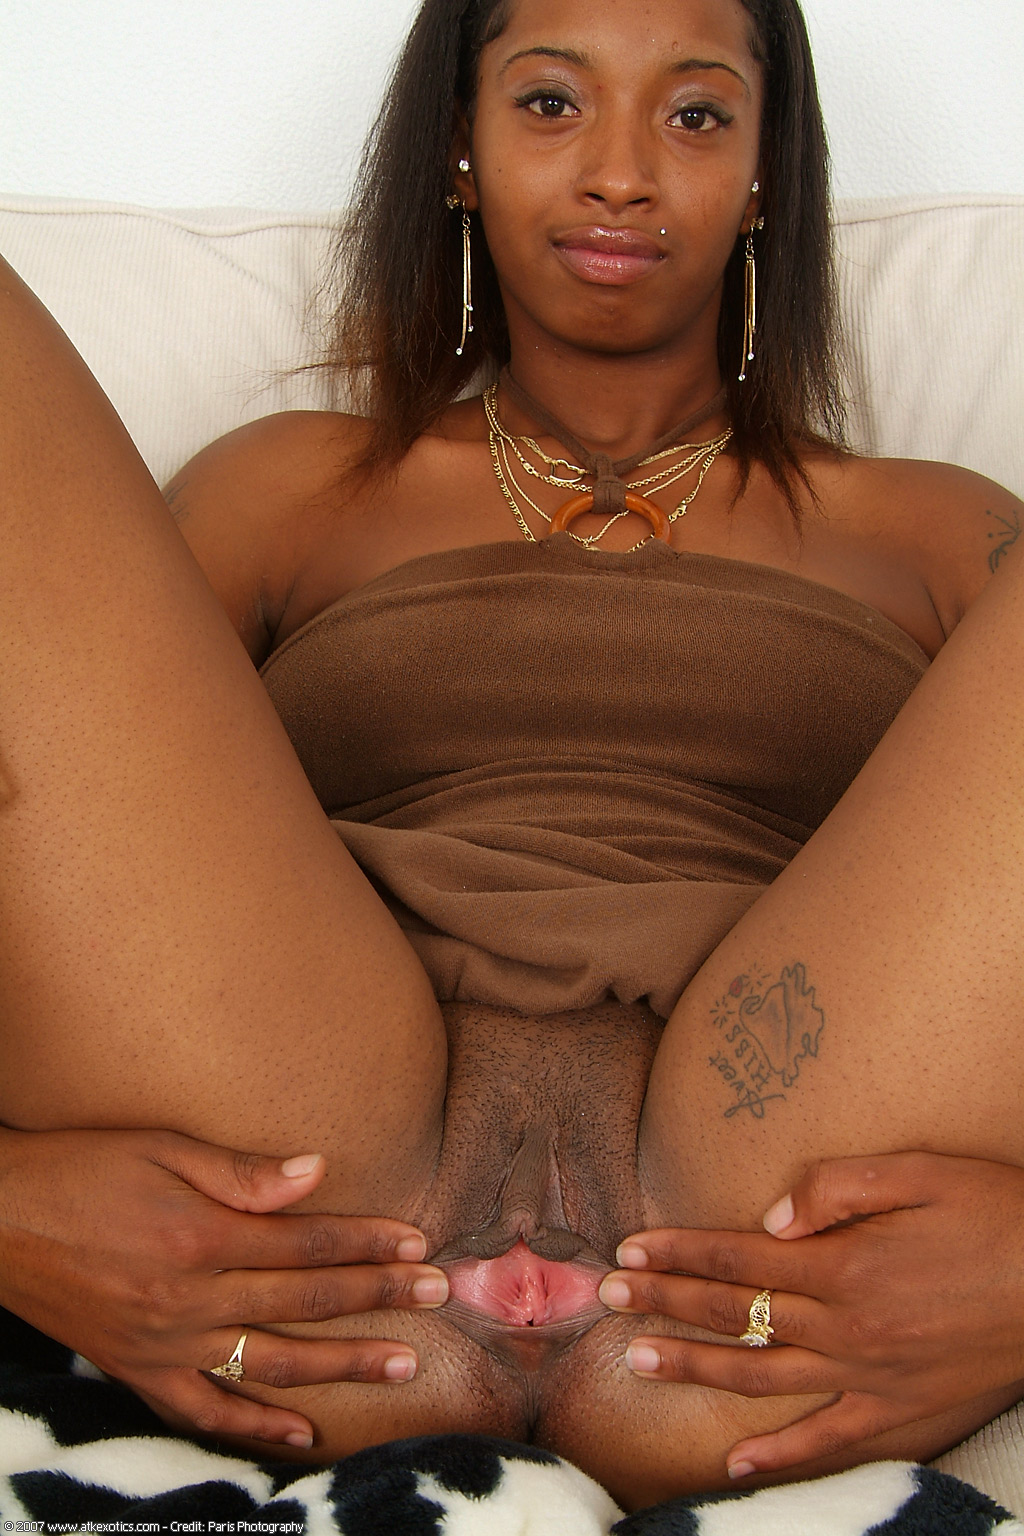 Leisure ebony porn pics erotic boobs